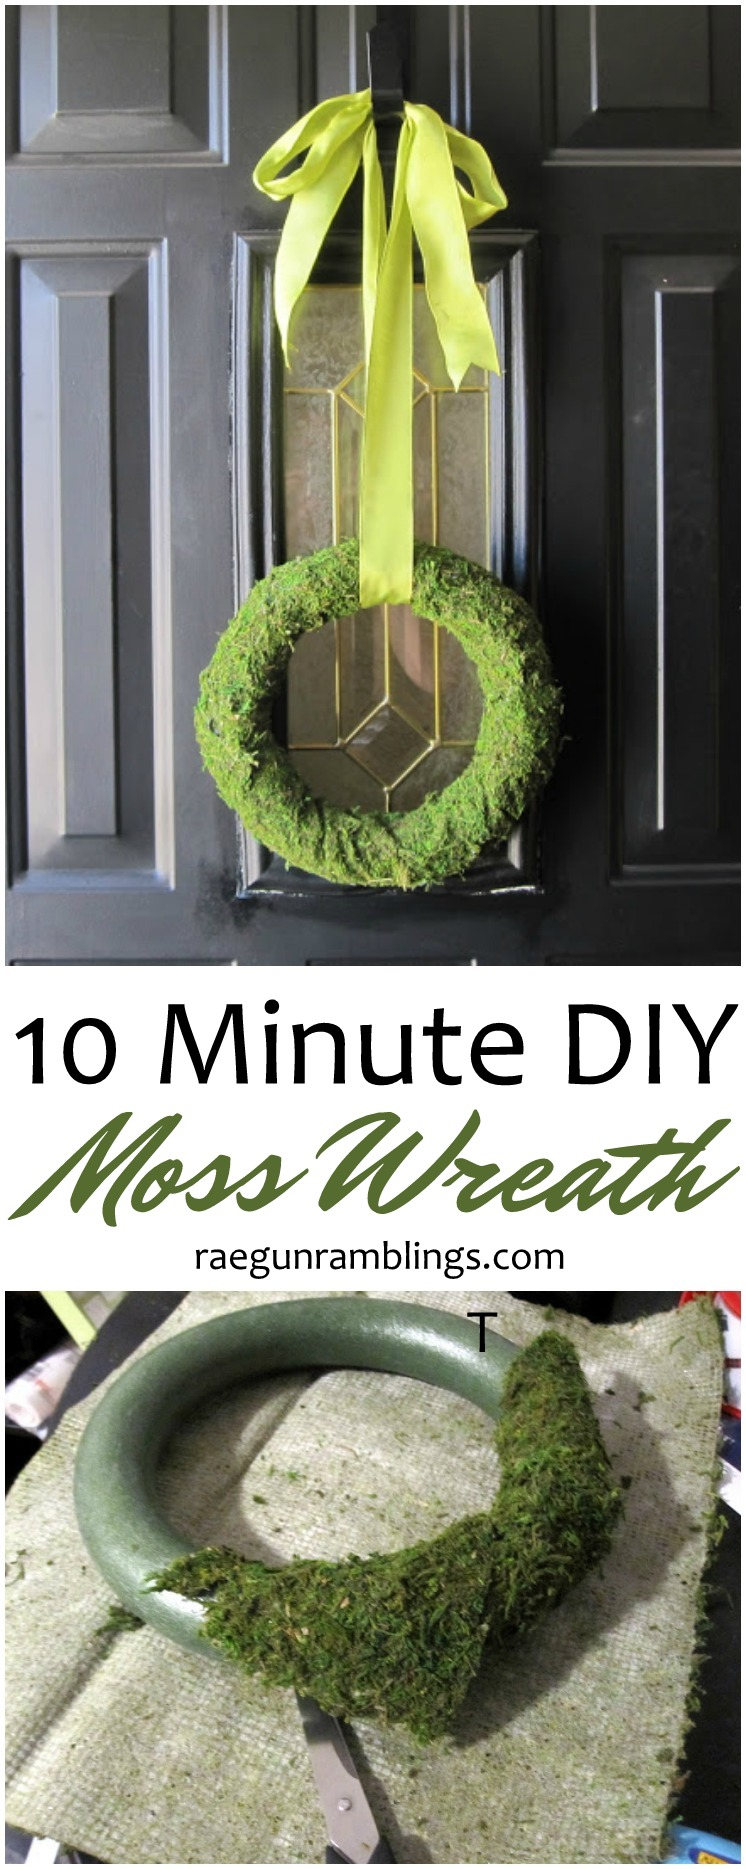 Made this last night. 10 minute DIY Moss Wreath tutorial. Easy festive Spring home decor craft tutorial